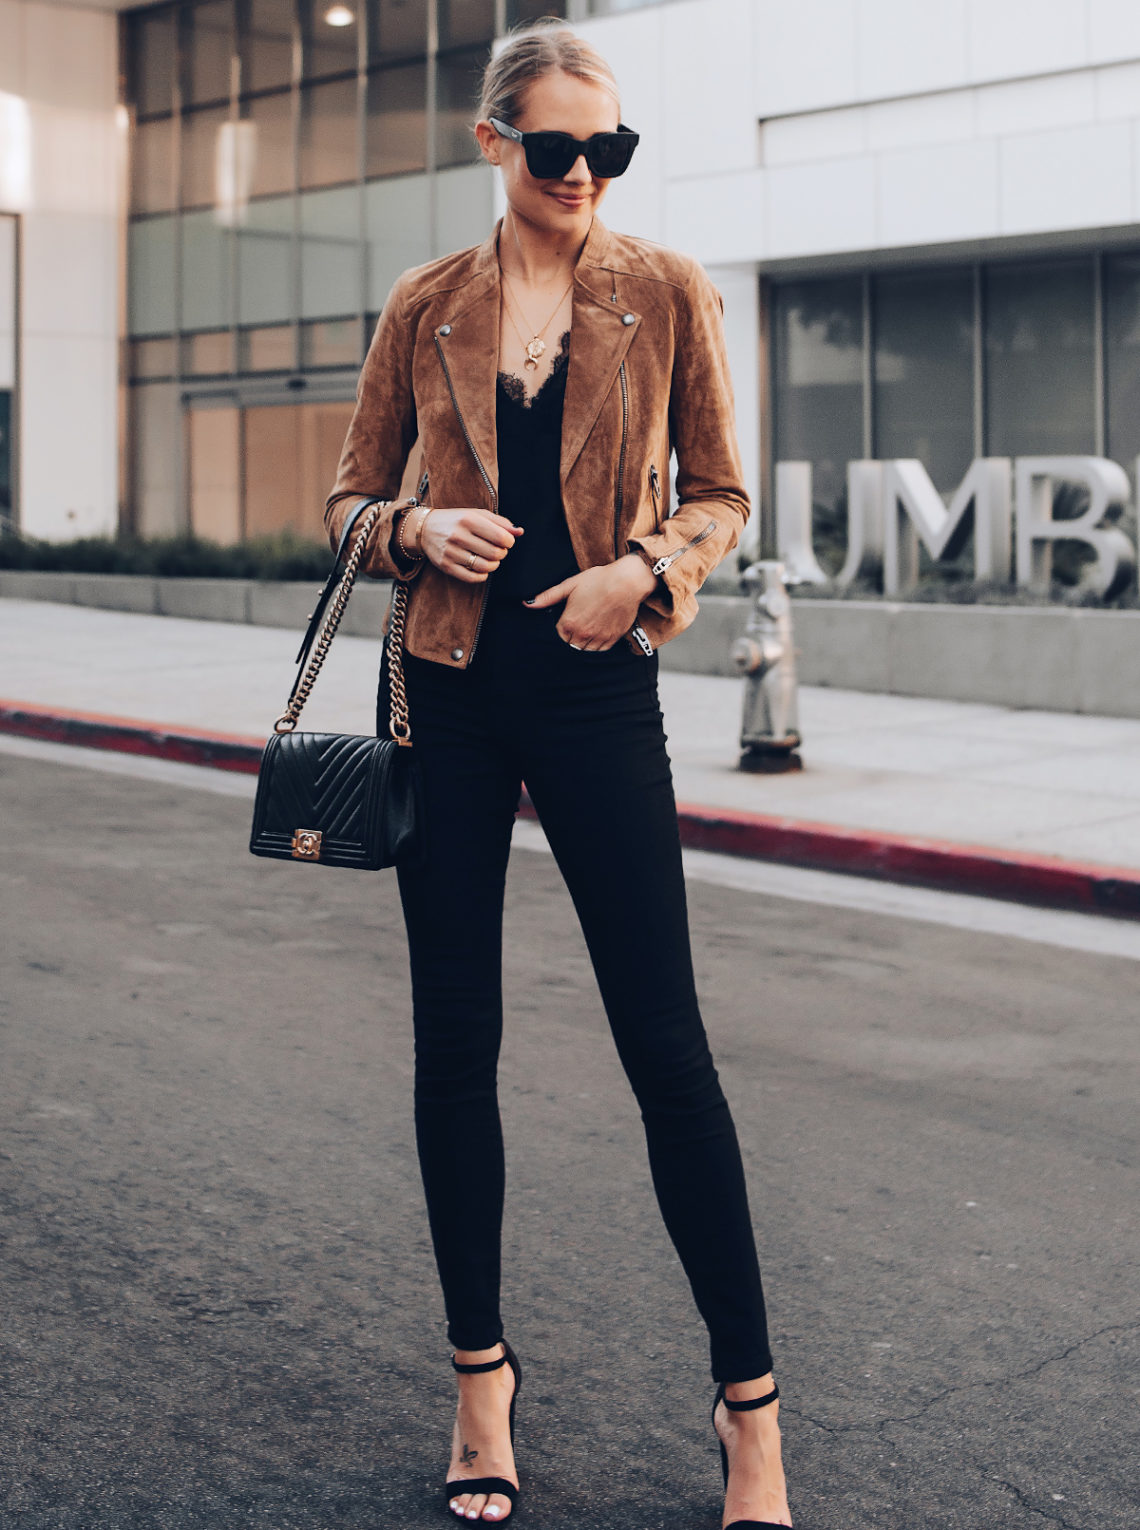 Blonde Woman Wearing Blanknyc Tan Suede Moto Jacket Black Lace Cami Everlane Black Skinny Jeans Black Ankle Strap Heeled Sandals Chanel Black Boy Bag Fashion Jackson San Diego Fashion Blogger Street Style